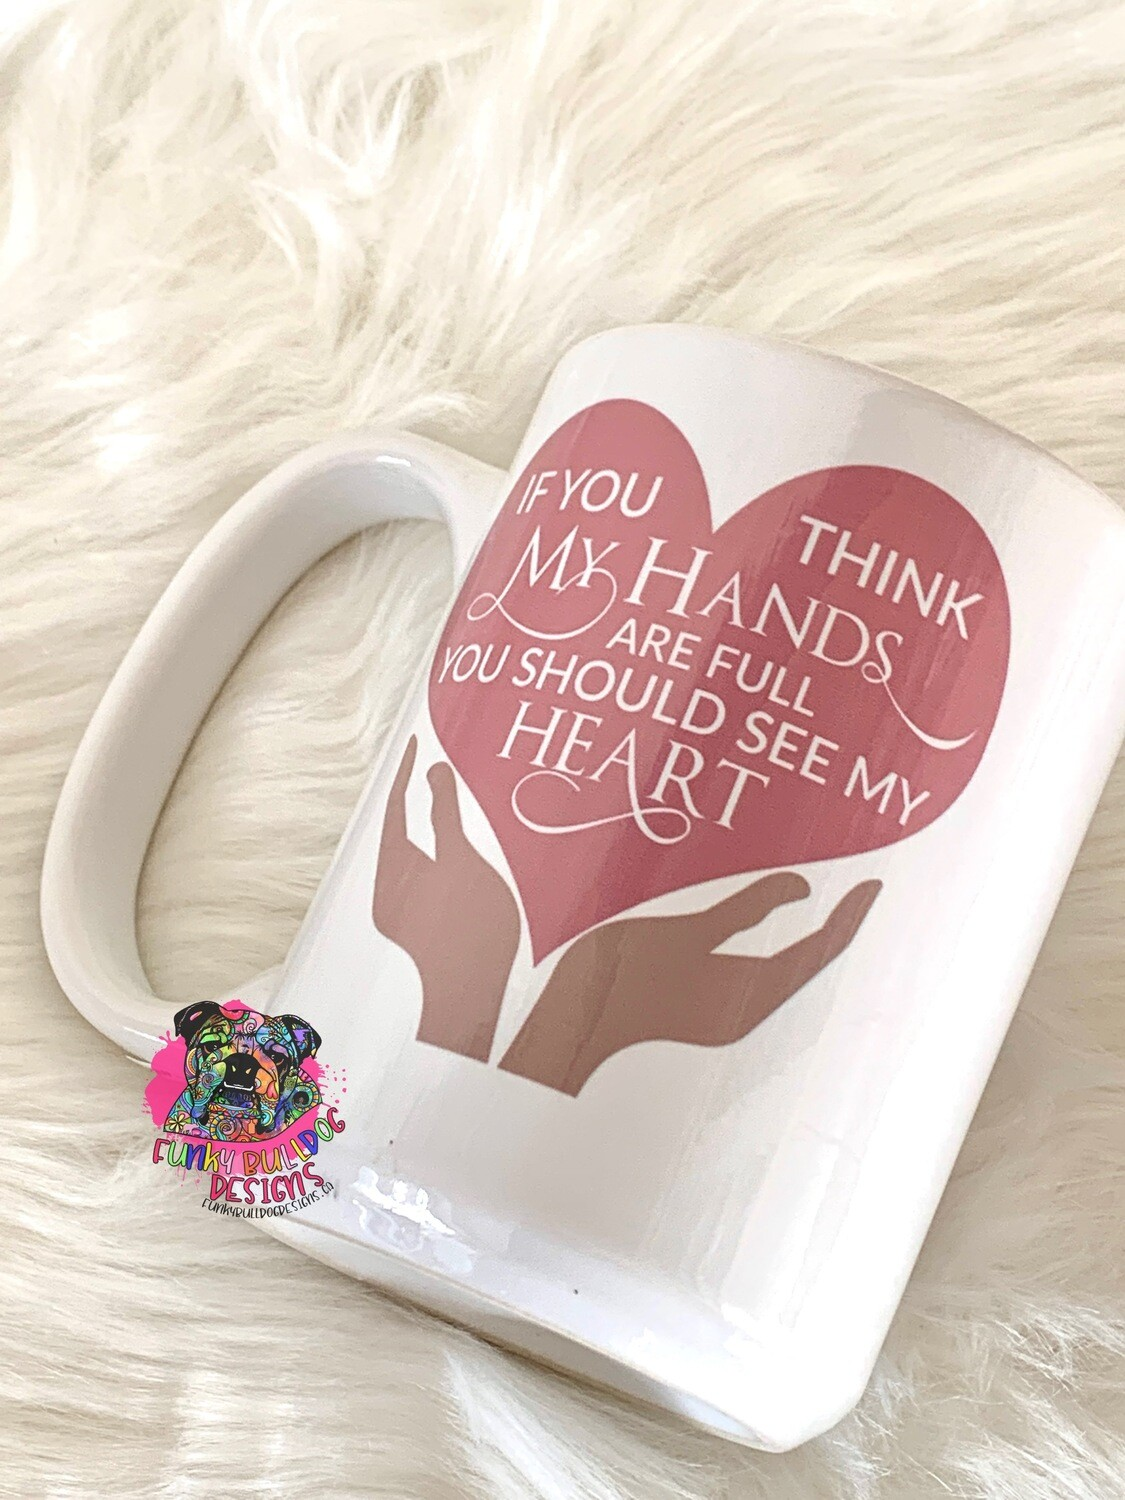 15oz Ceramic Mug - If you think my hands are full you should see my heart - mama bear